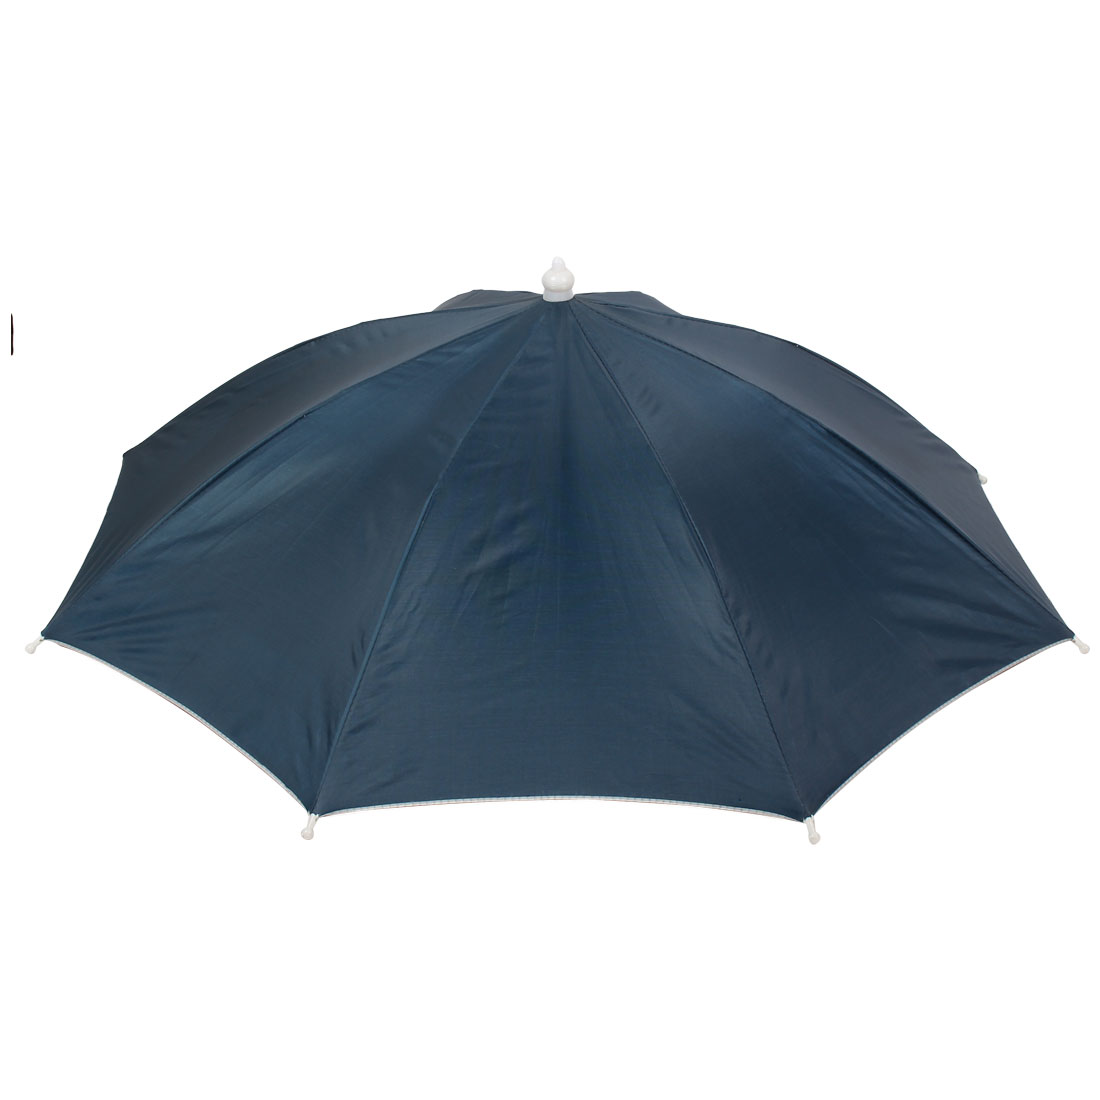 Self Tie Metal Frame Outdoor Fishing Umbrella Hat Cap Blue w Gray Strap